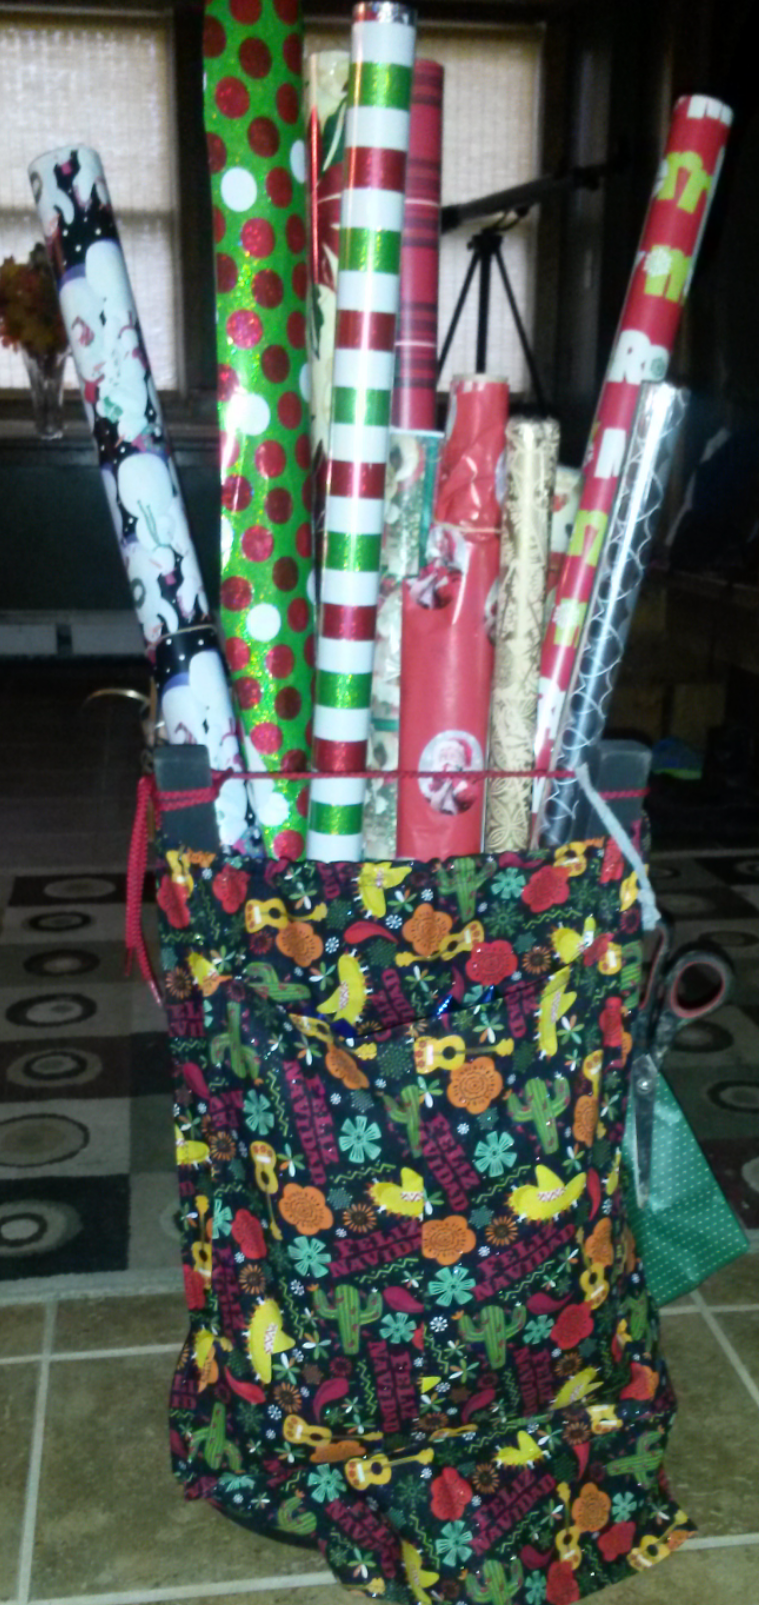 Picture of Wrapping Paper Holder